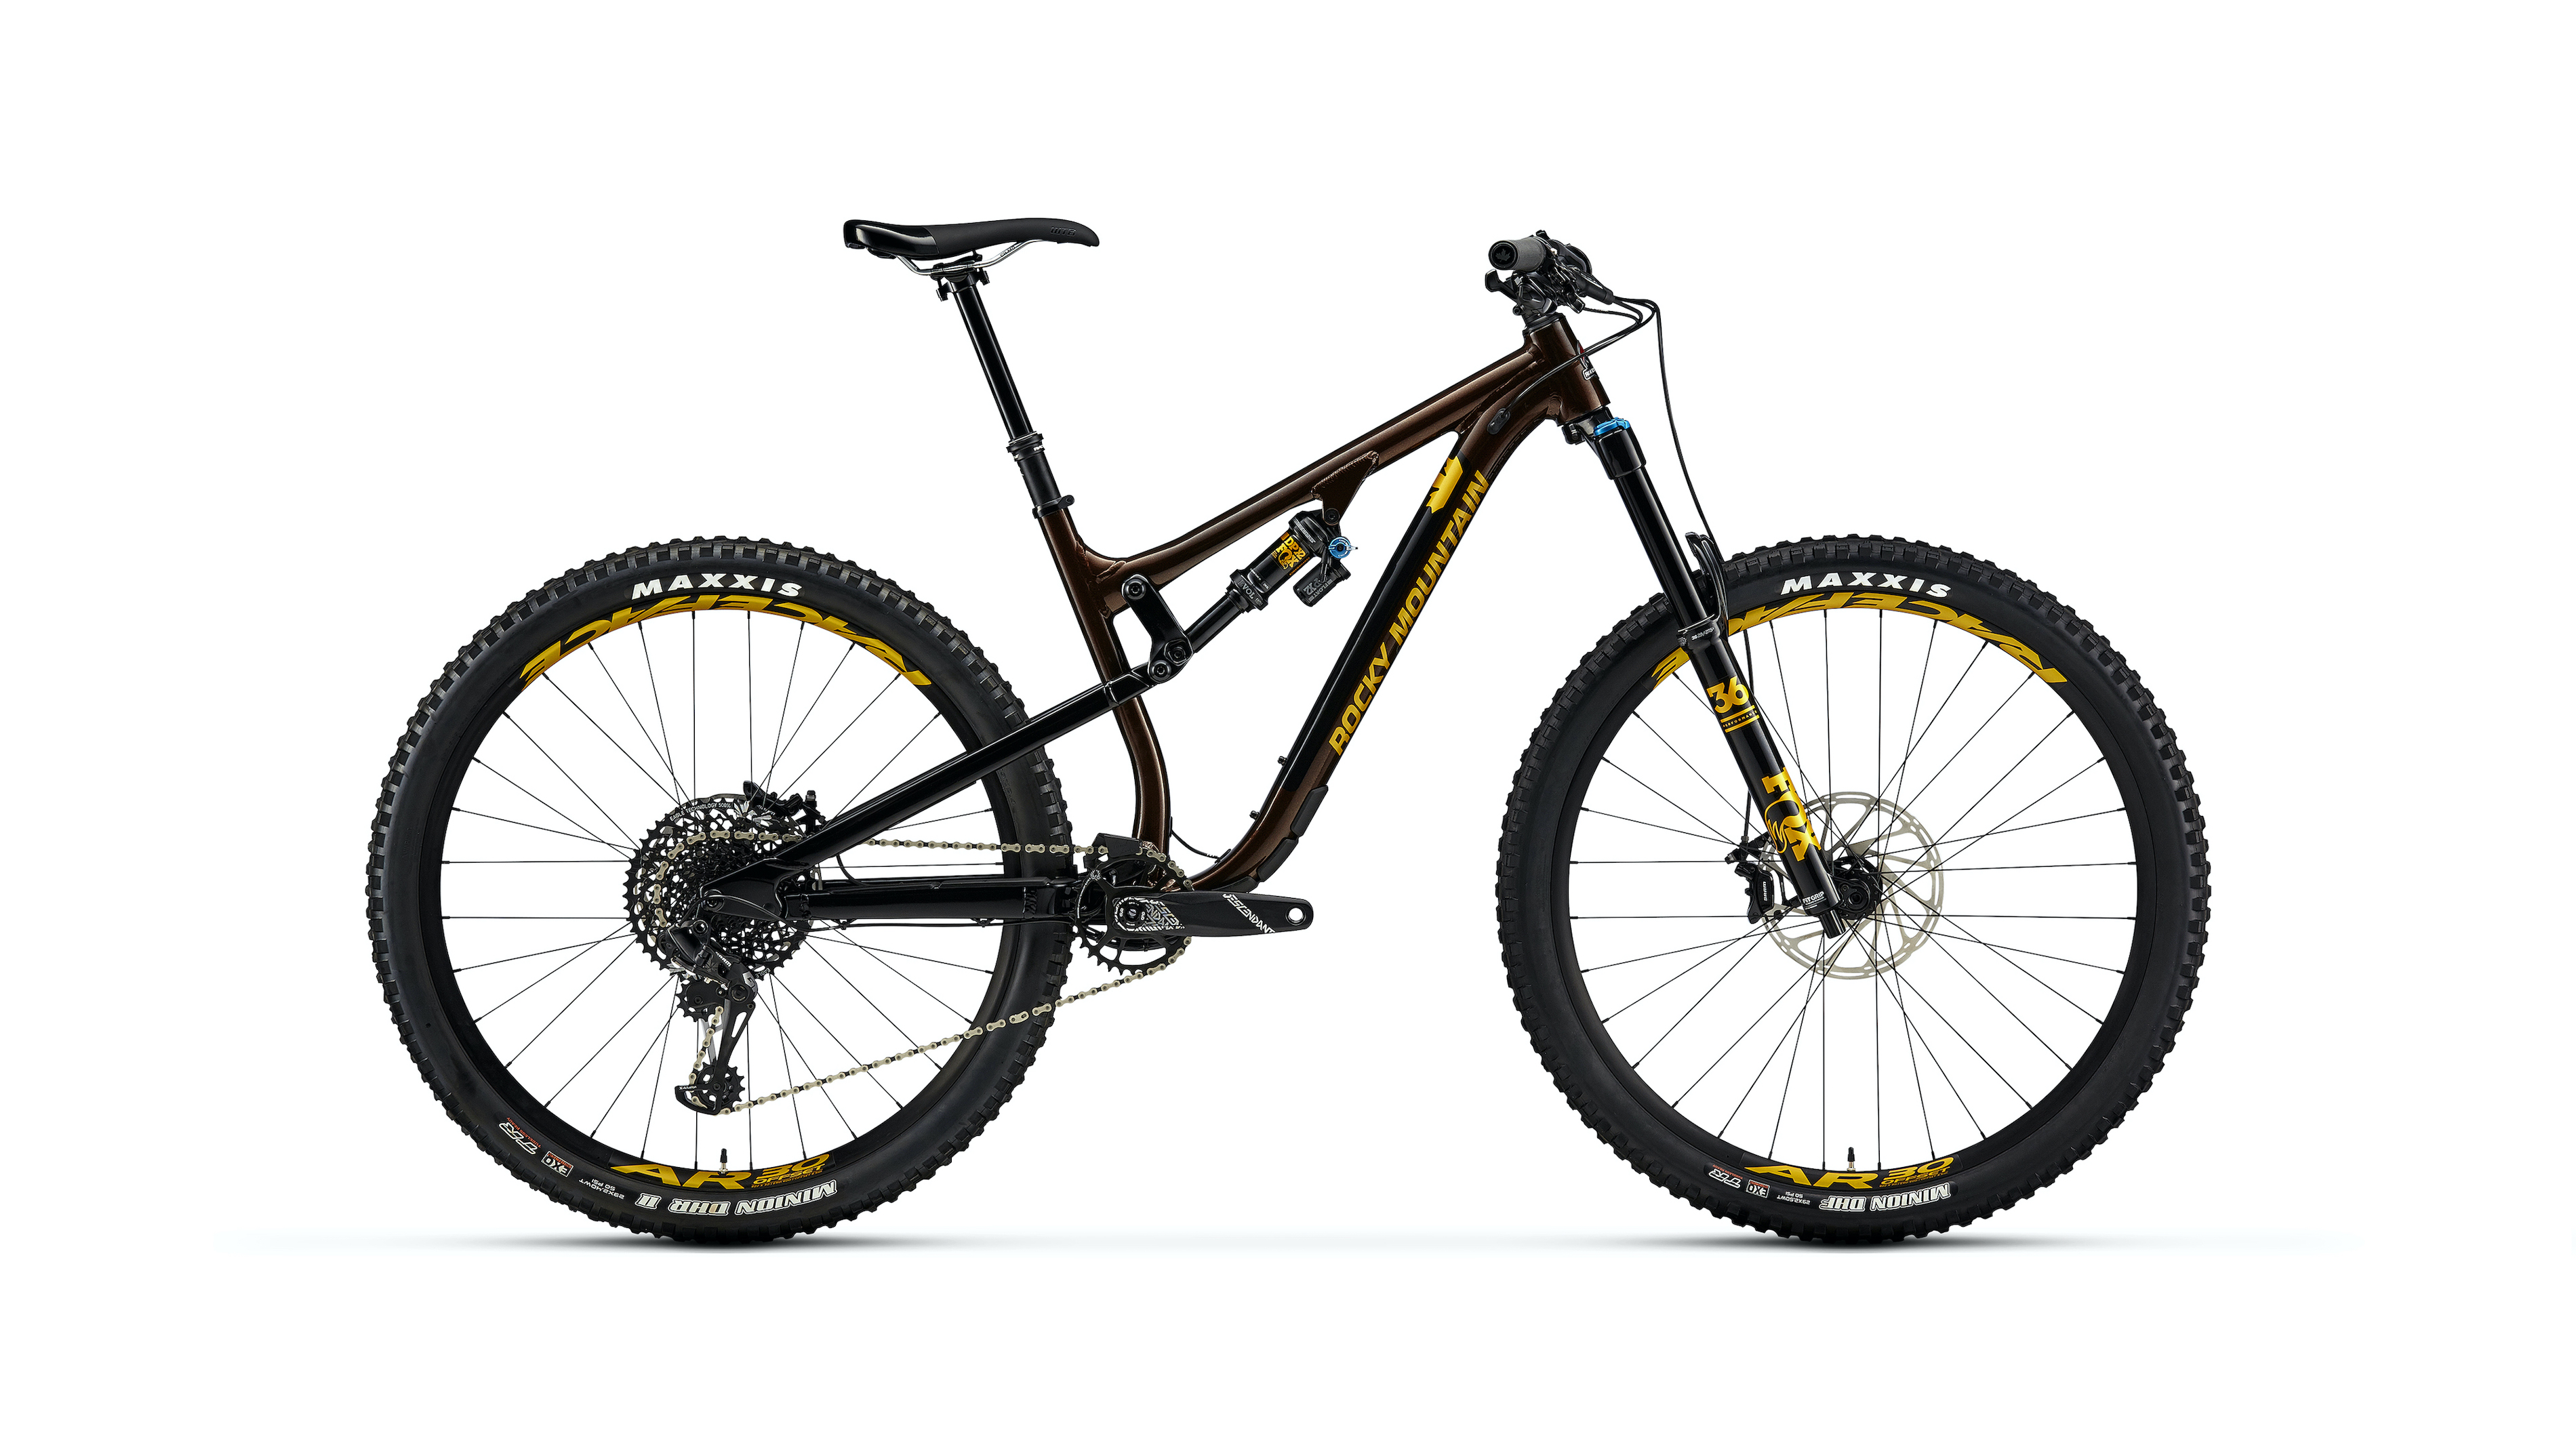 2019 Rocky Mountain Instinct BC A50 $99.00